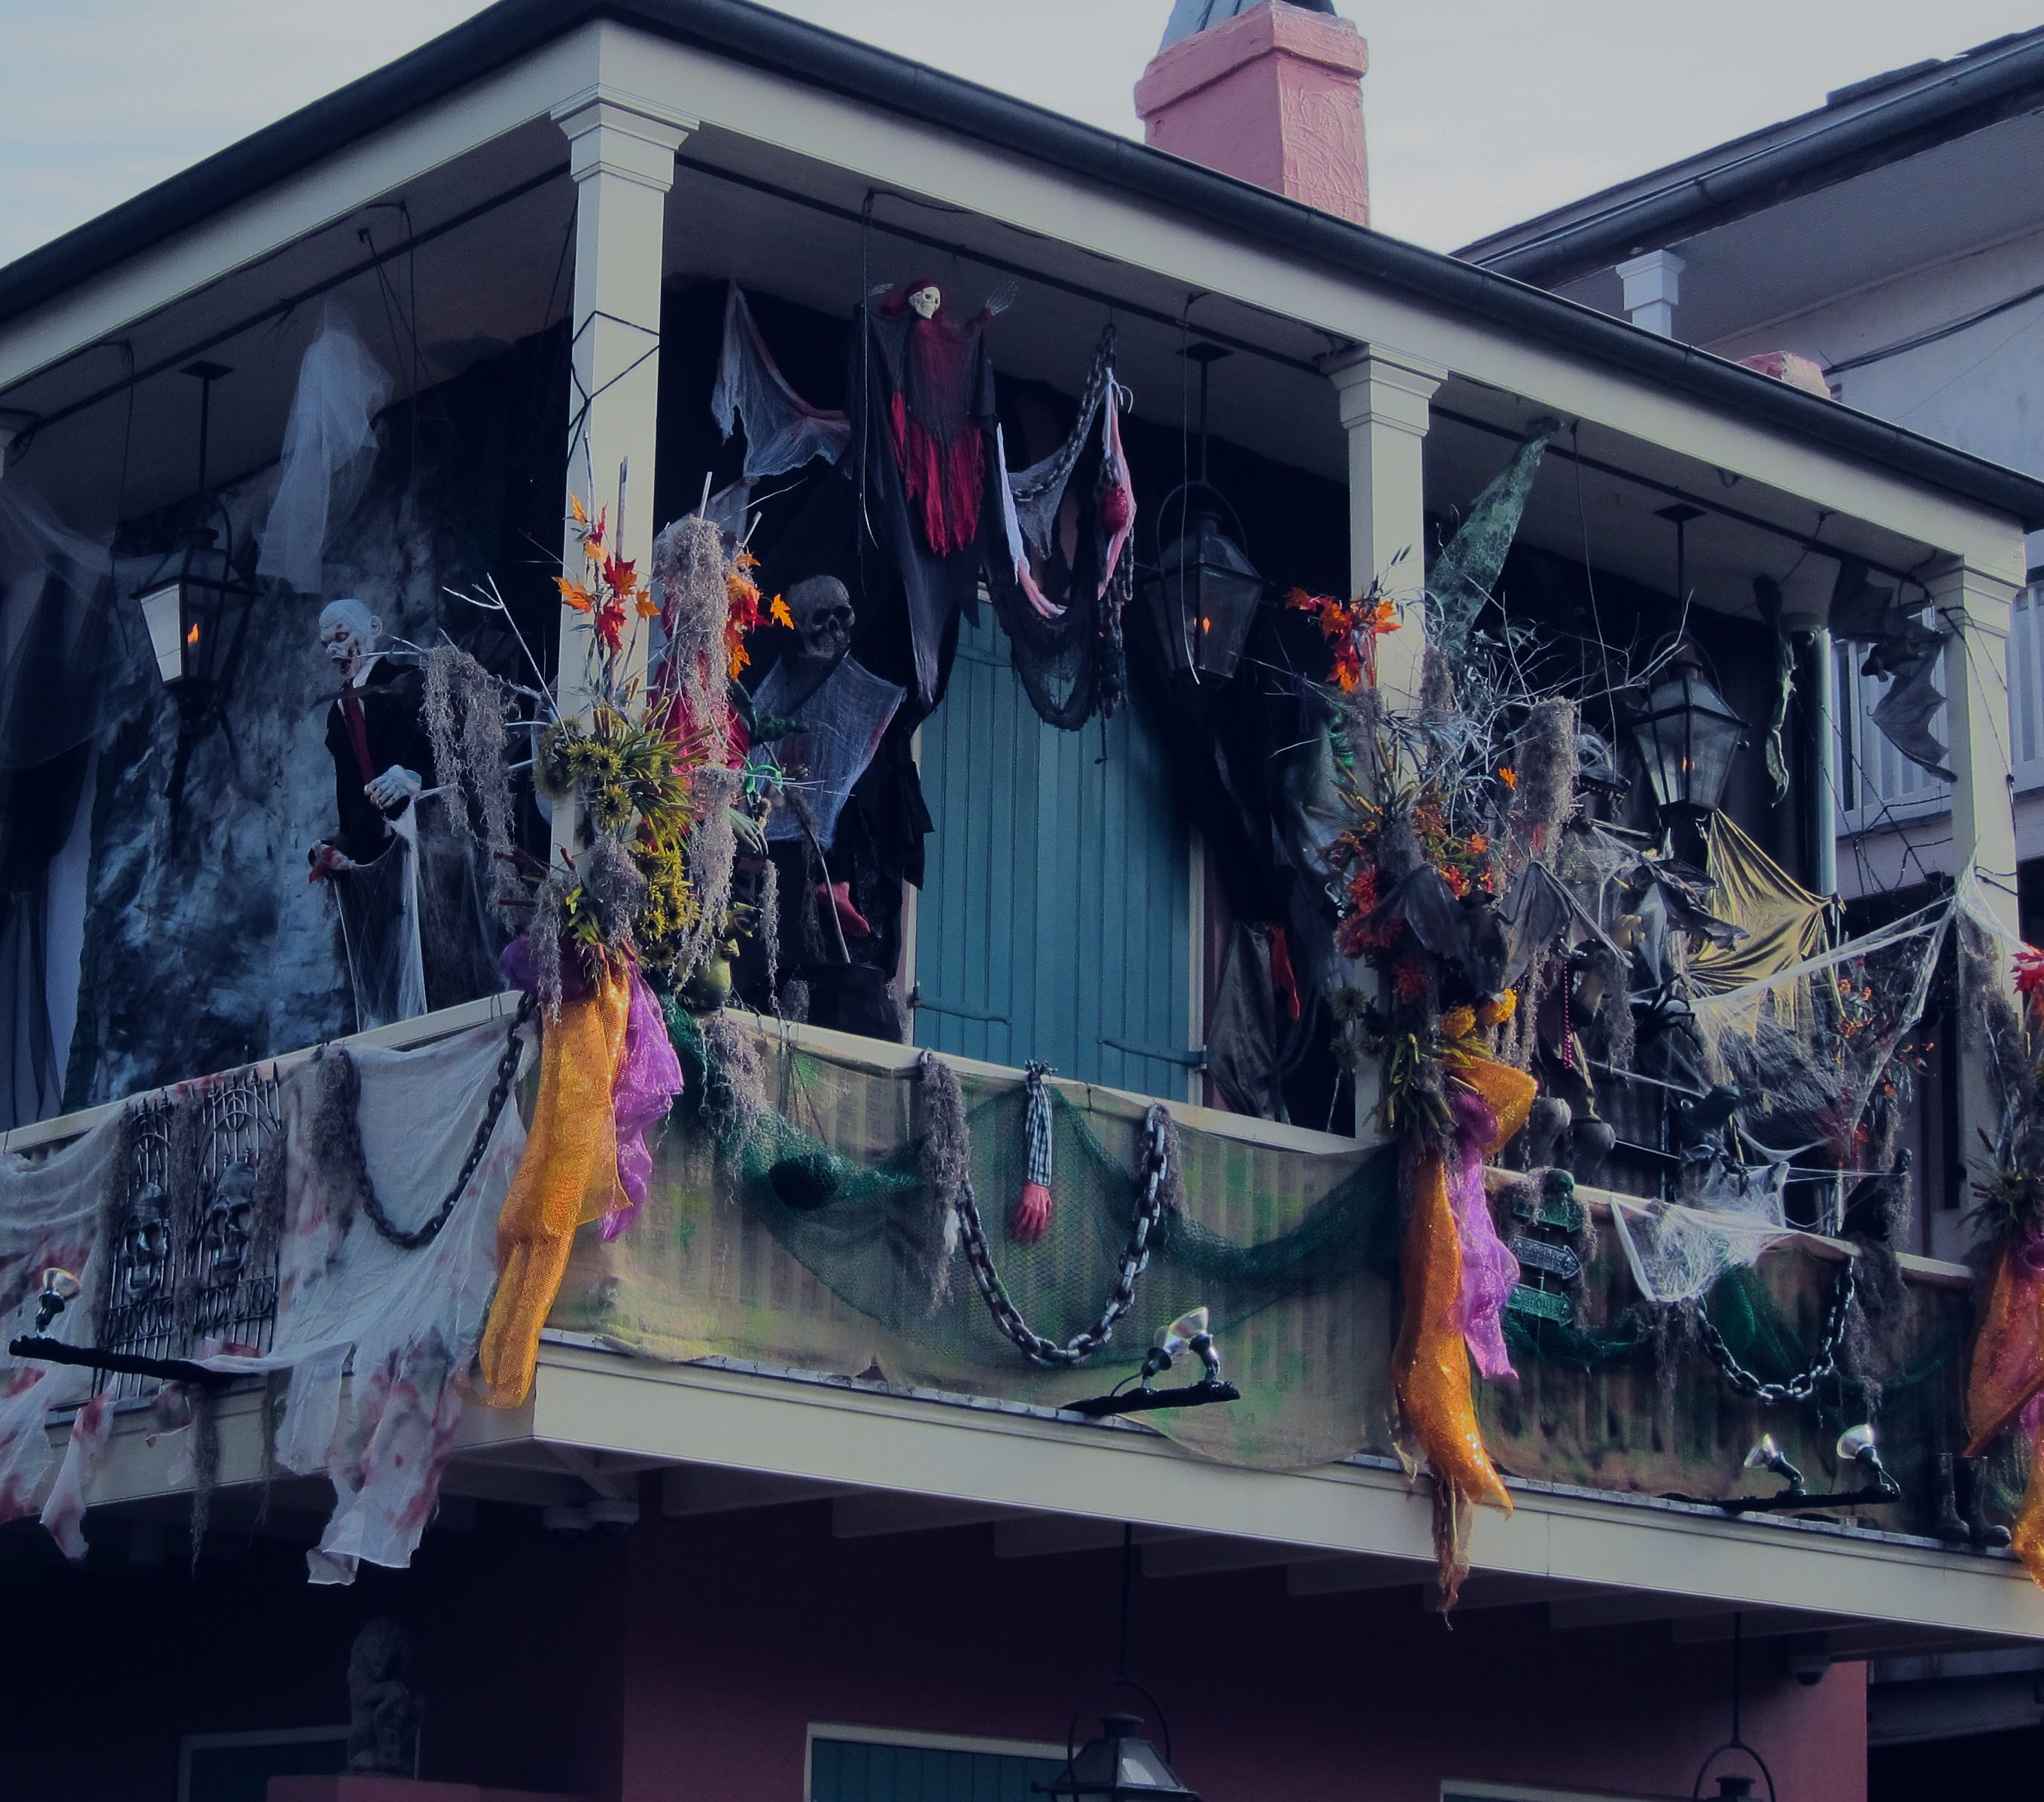 Halloween Decorations New Orleans Balcony French Quarter